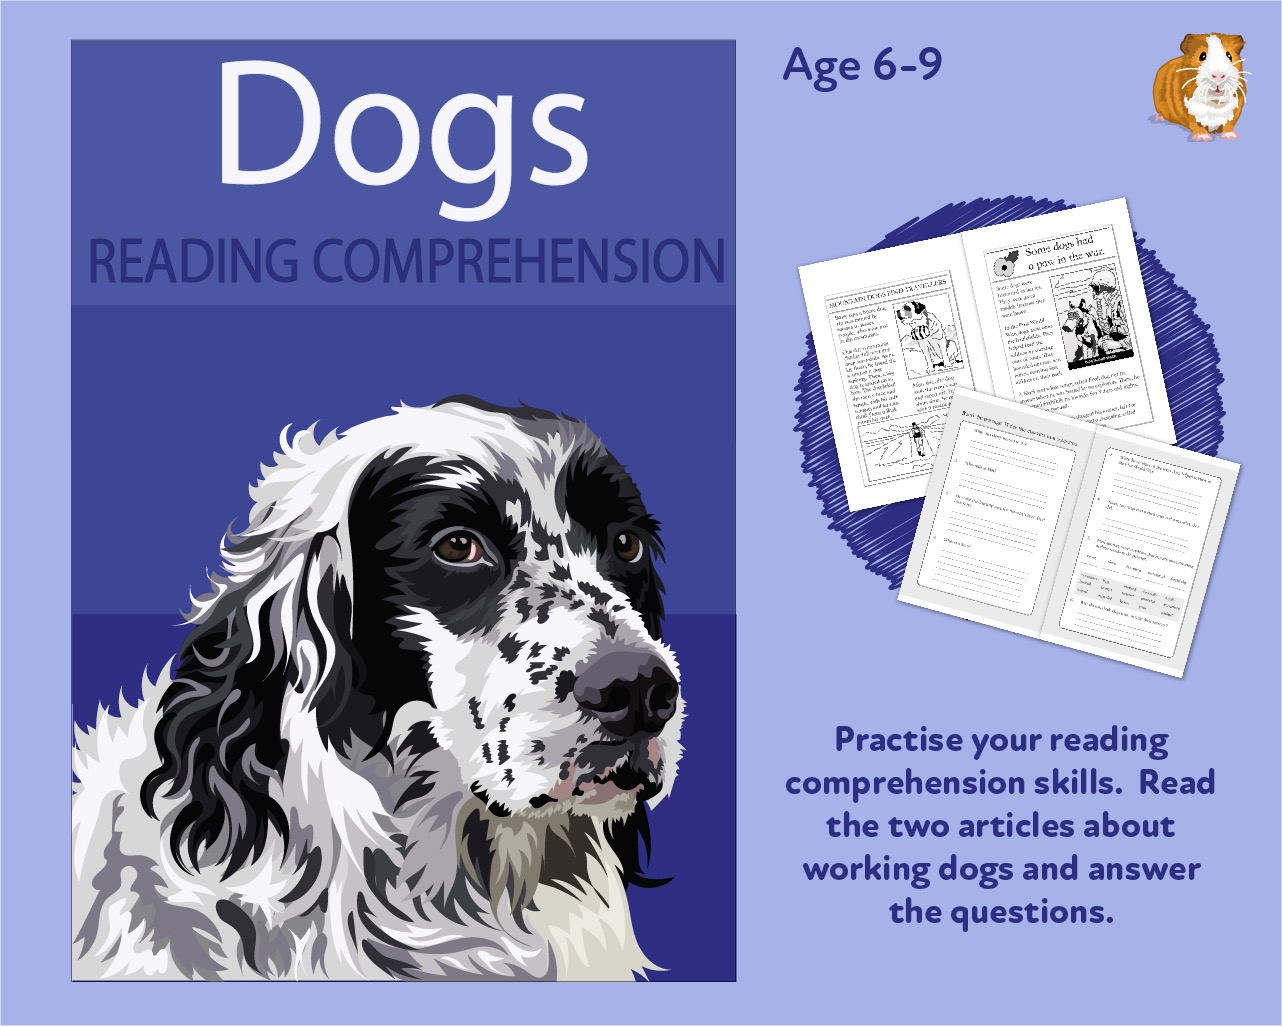 Let's Practise Our Reading Comprehension: Dogs (6-9 years)